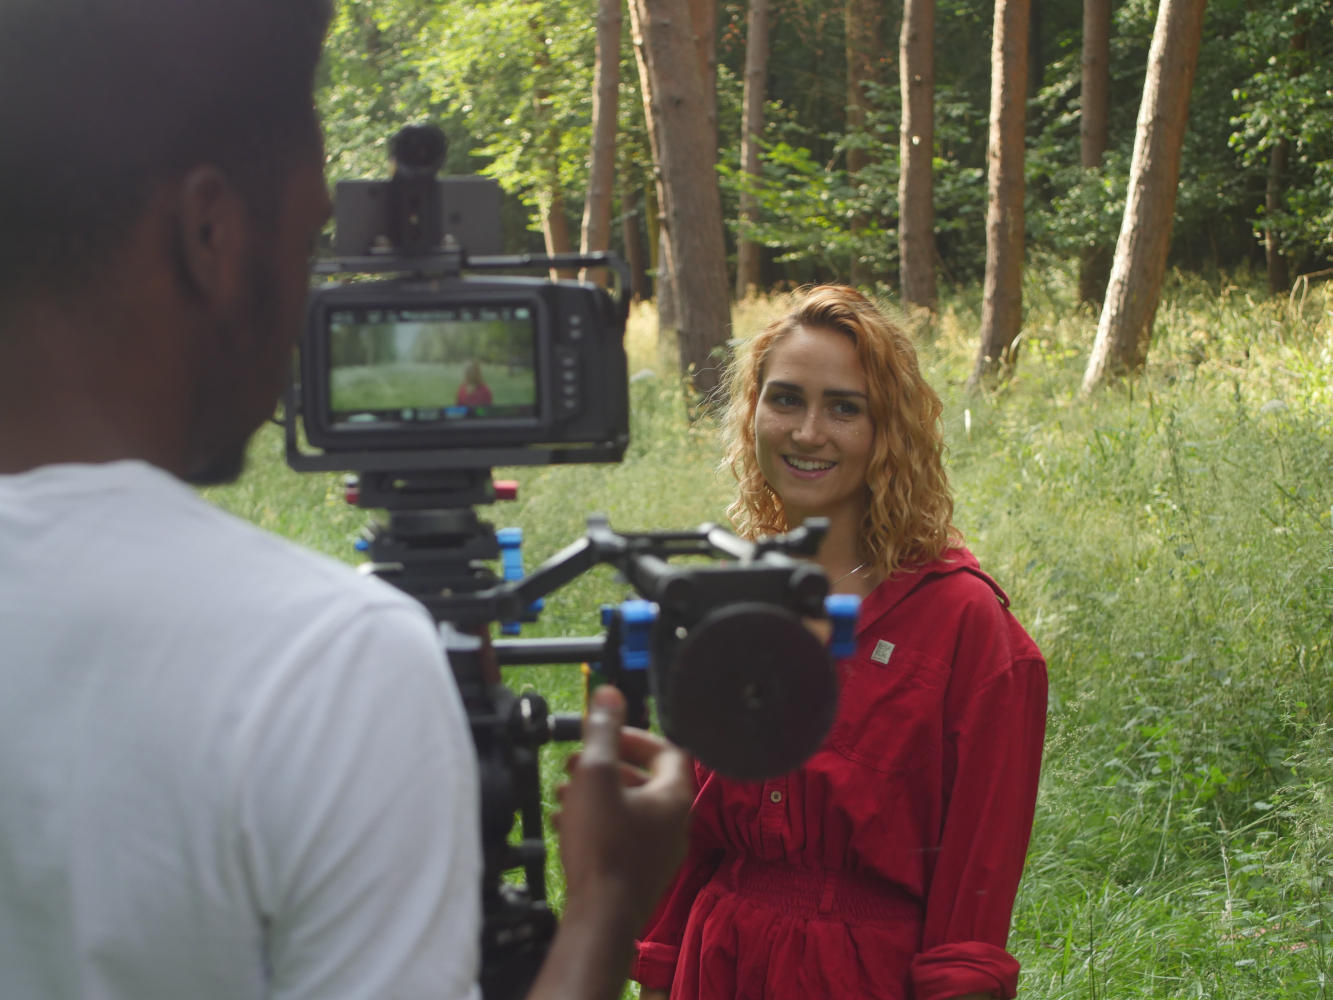 Behind the scenes image from short film Robyn of lead actor Amie Butler